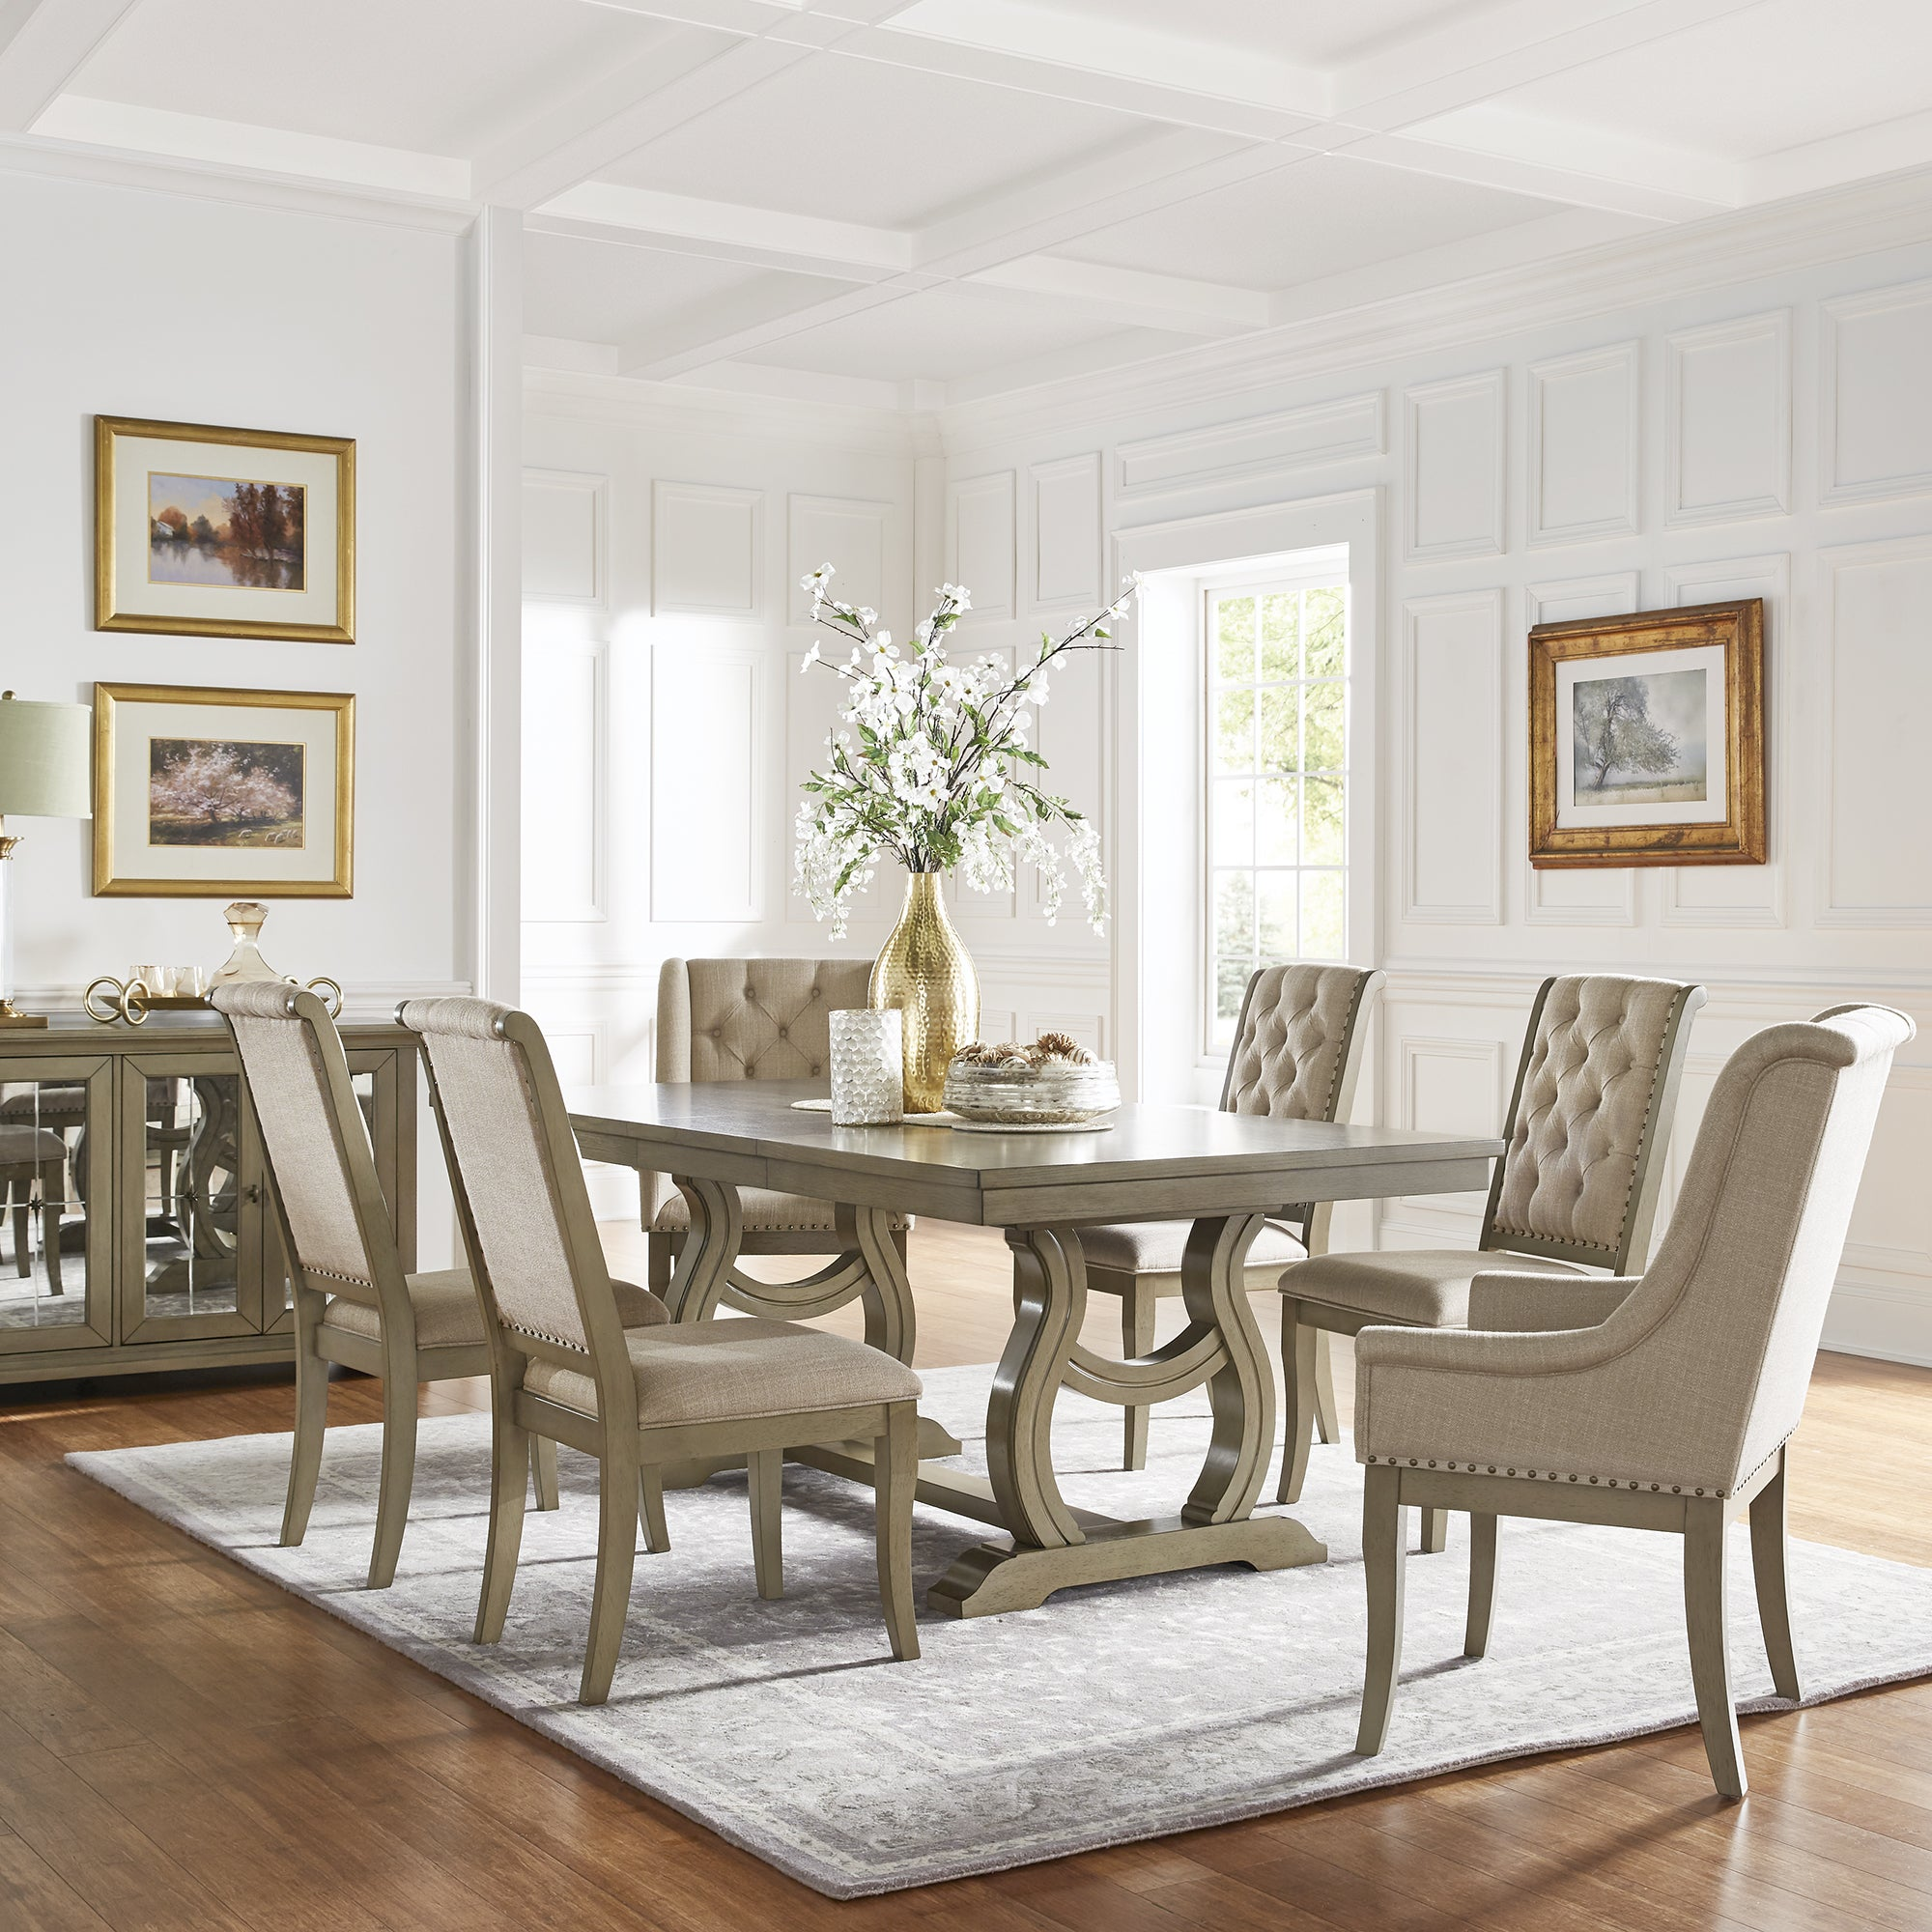 The Gray Barn Camilla Trestle Base Dining Table With Cream Tufted Nailhead Dining Chair Overstock 26279464